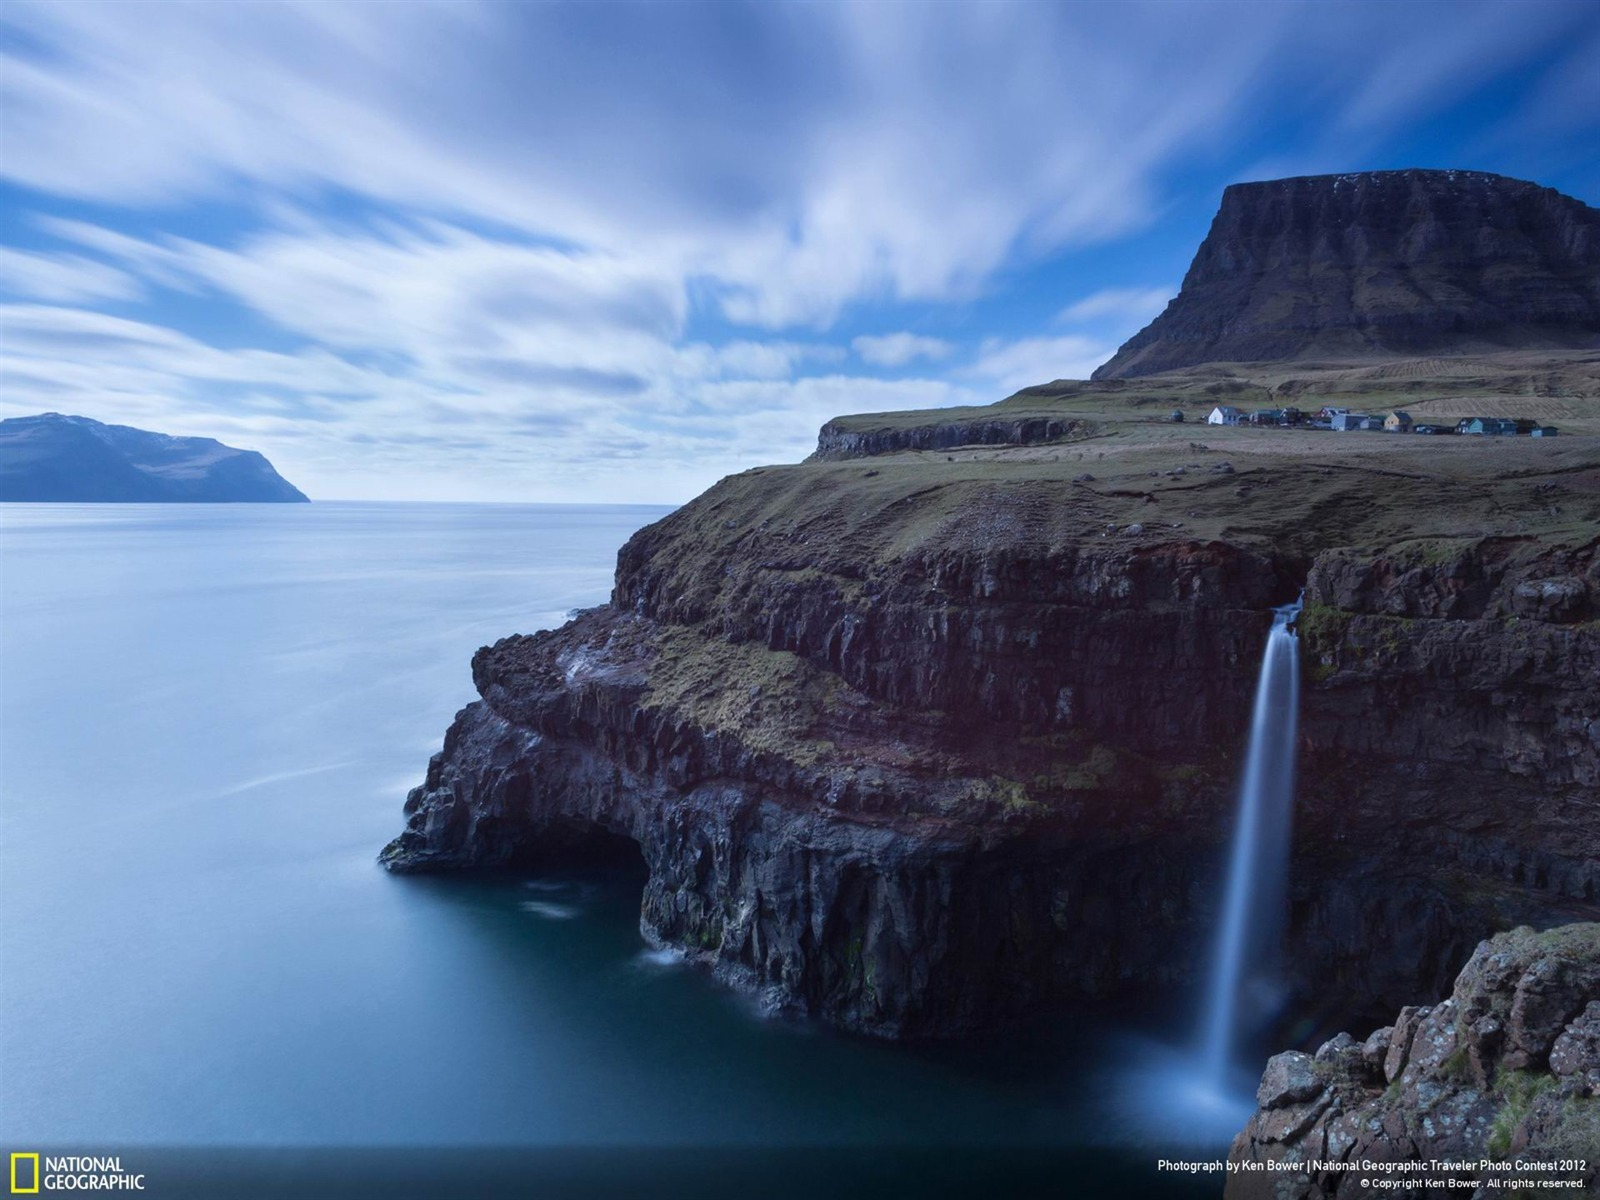 [PHOTOGRAPHY] National Geographic Wallpapers - ART FOR ...